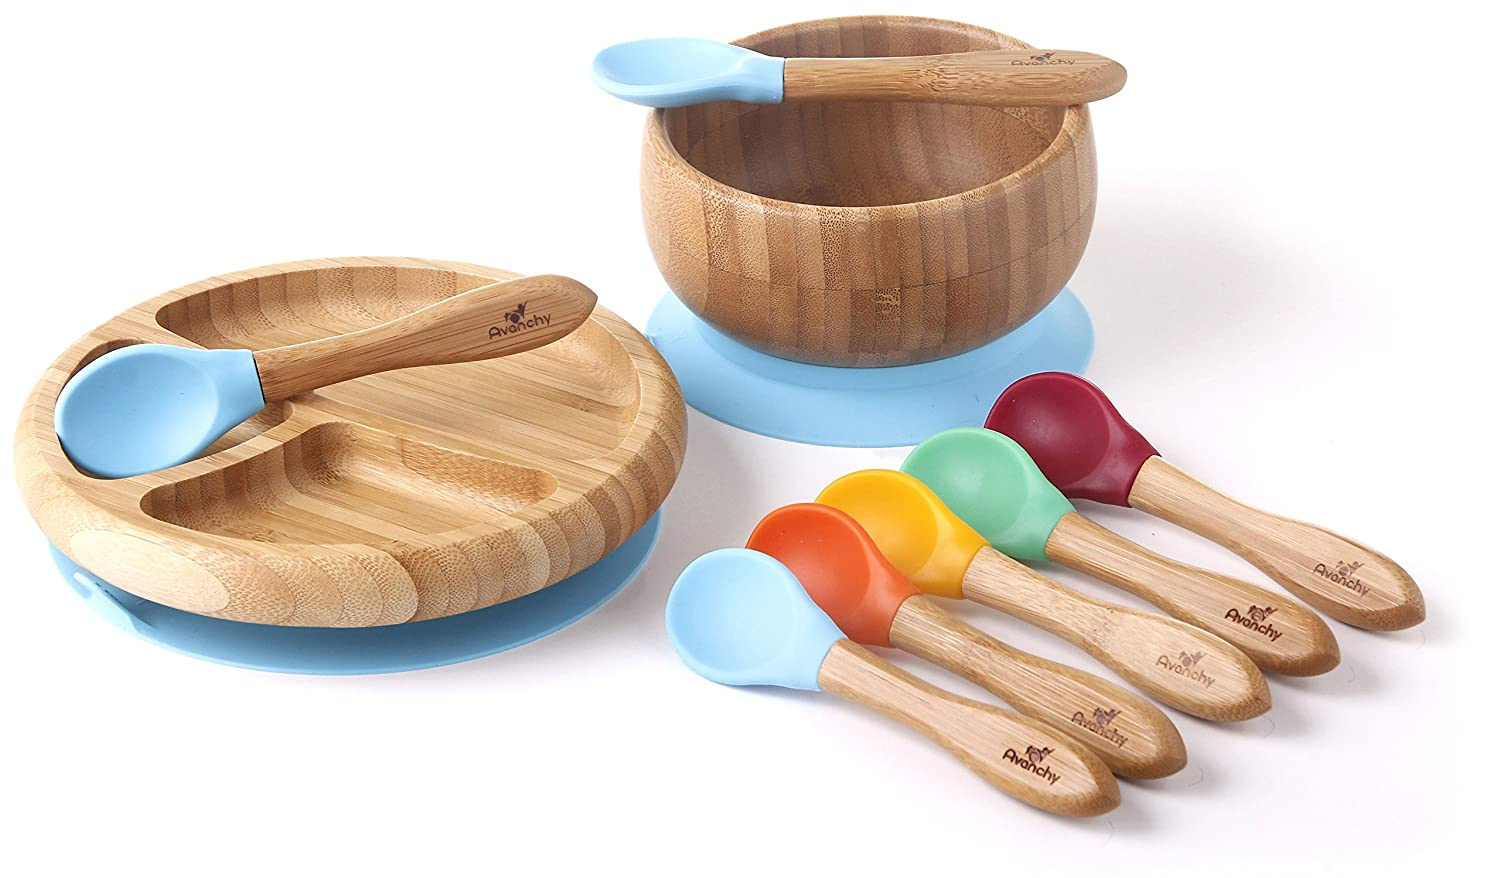 Avanchy Baby Feeding Bamboo Spill Proof Stay Put Suction Divided Plate + Baby Spoon - Great Baby Gift Set, Green 454521